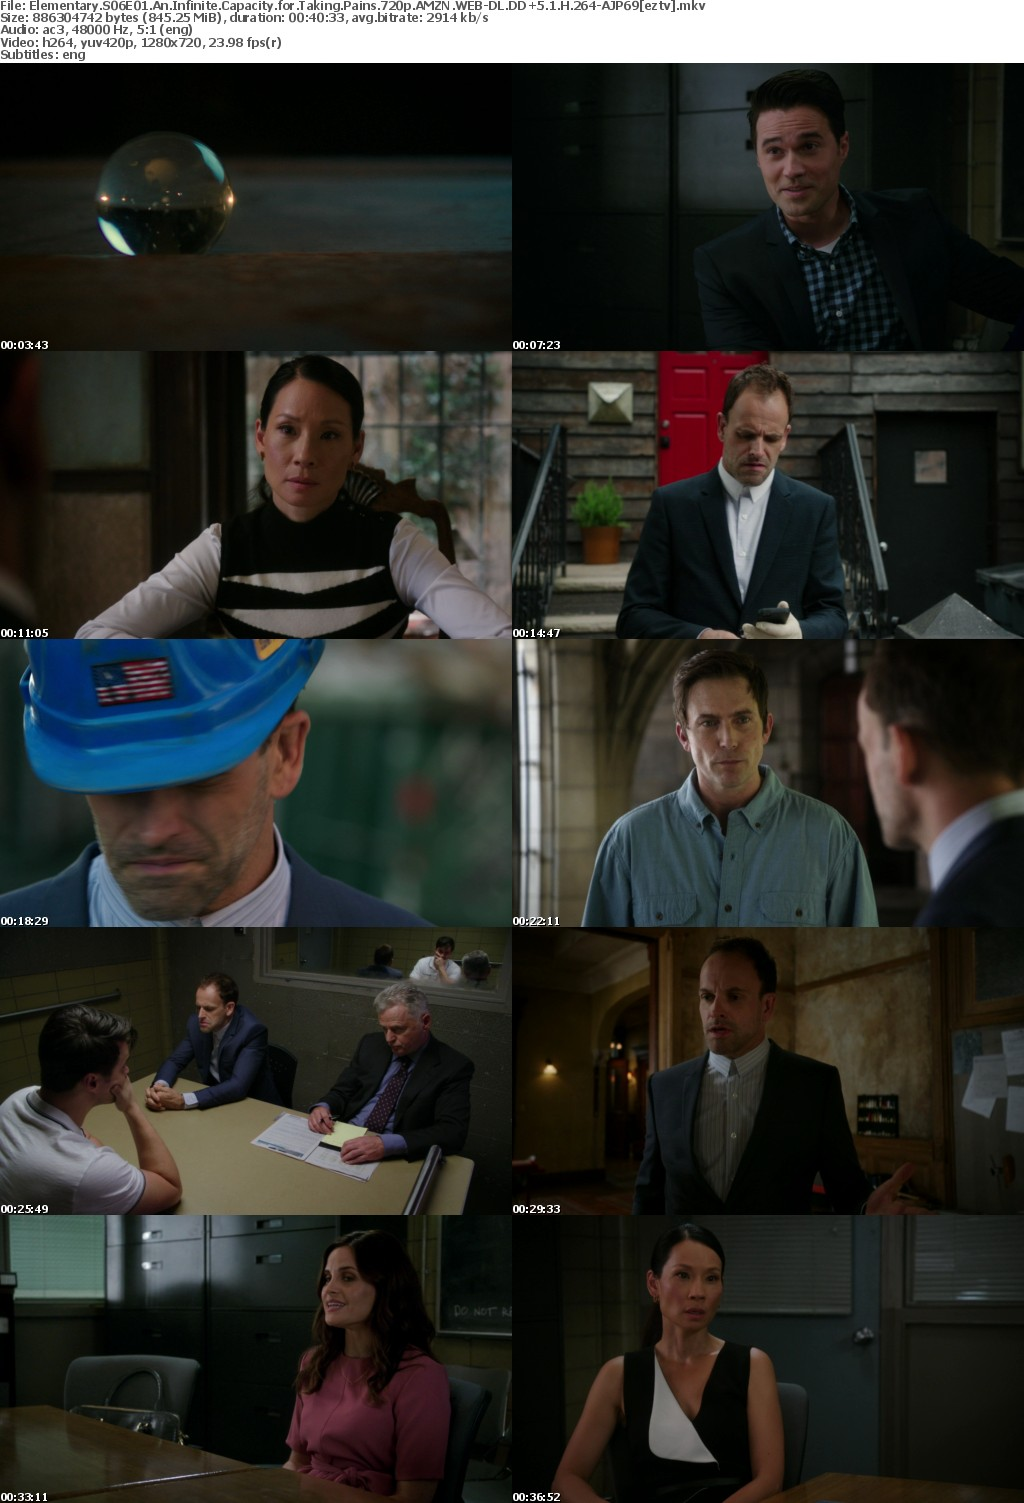 Elementary S06E01 An Infinite Capacity for Taking Pains 720p AMZN WEB-DL DD+5 1 H 264-AJP69